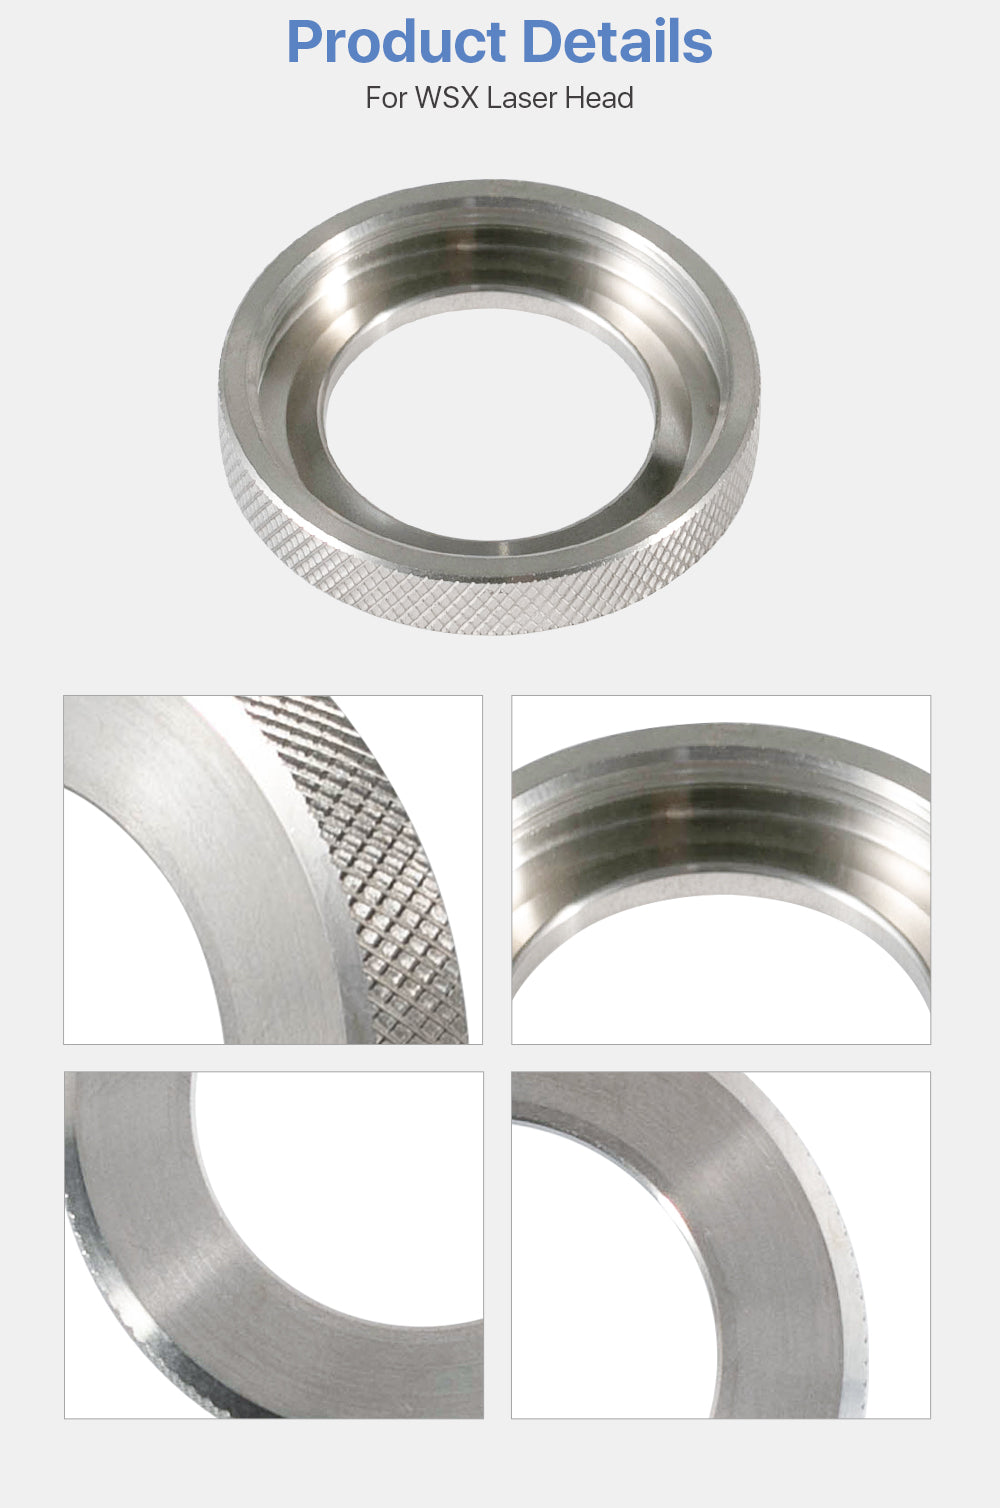 Nozzle Connector Locking Ring